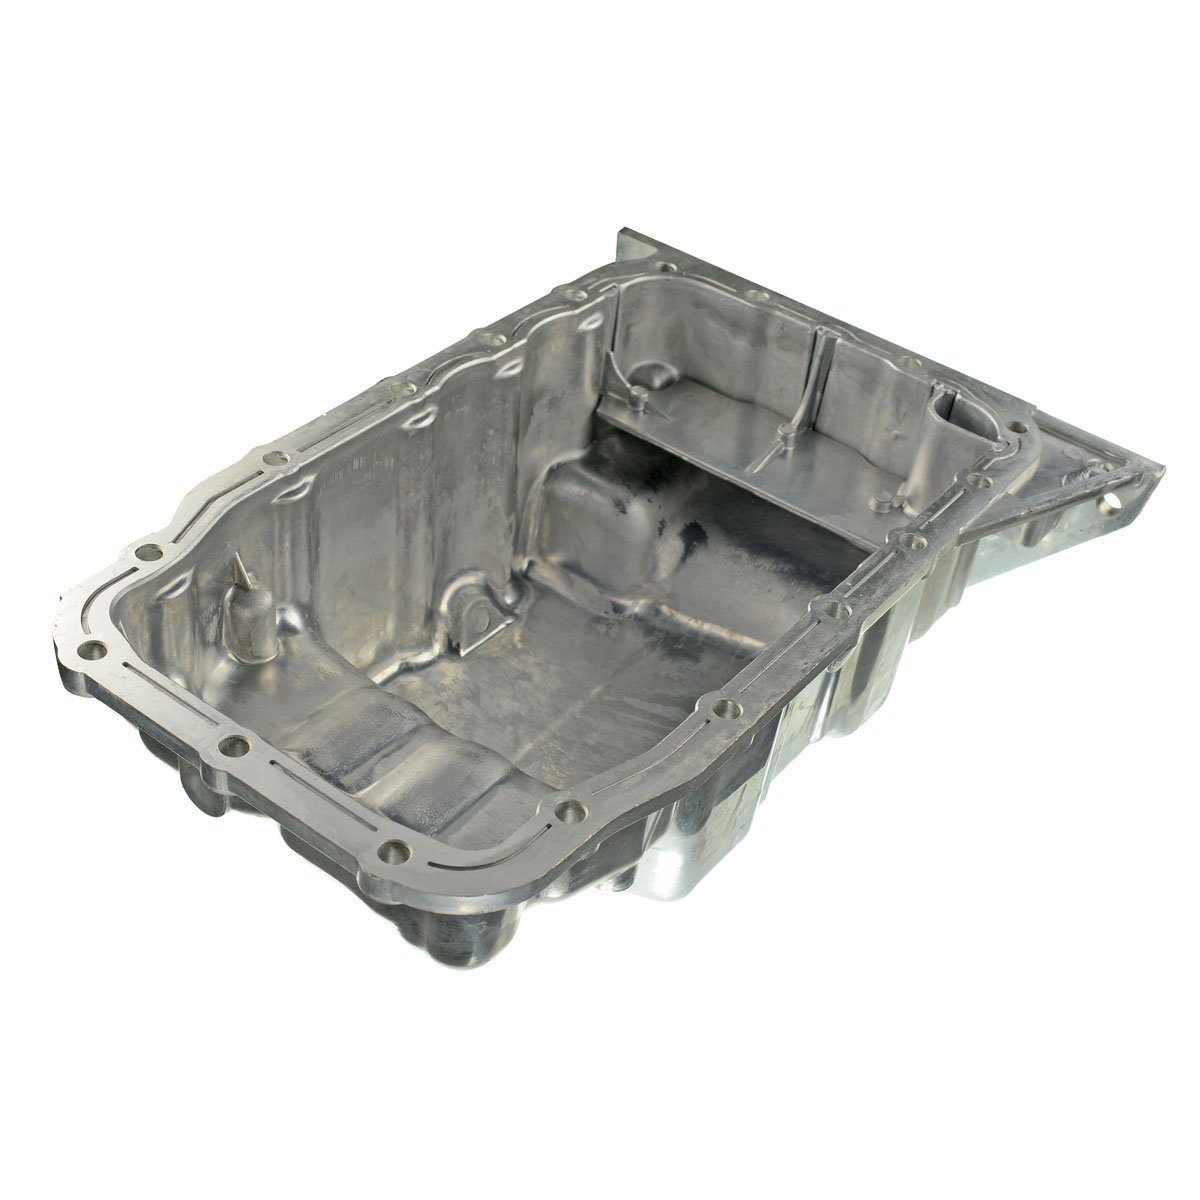 A-Premium Engine Oil Pan for Saturn L300 2001-2005 LW300 2001-2003 LS2 LW2 2000 V6 3.0L